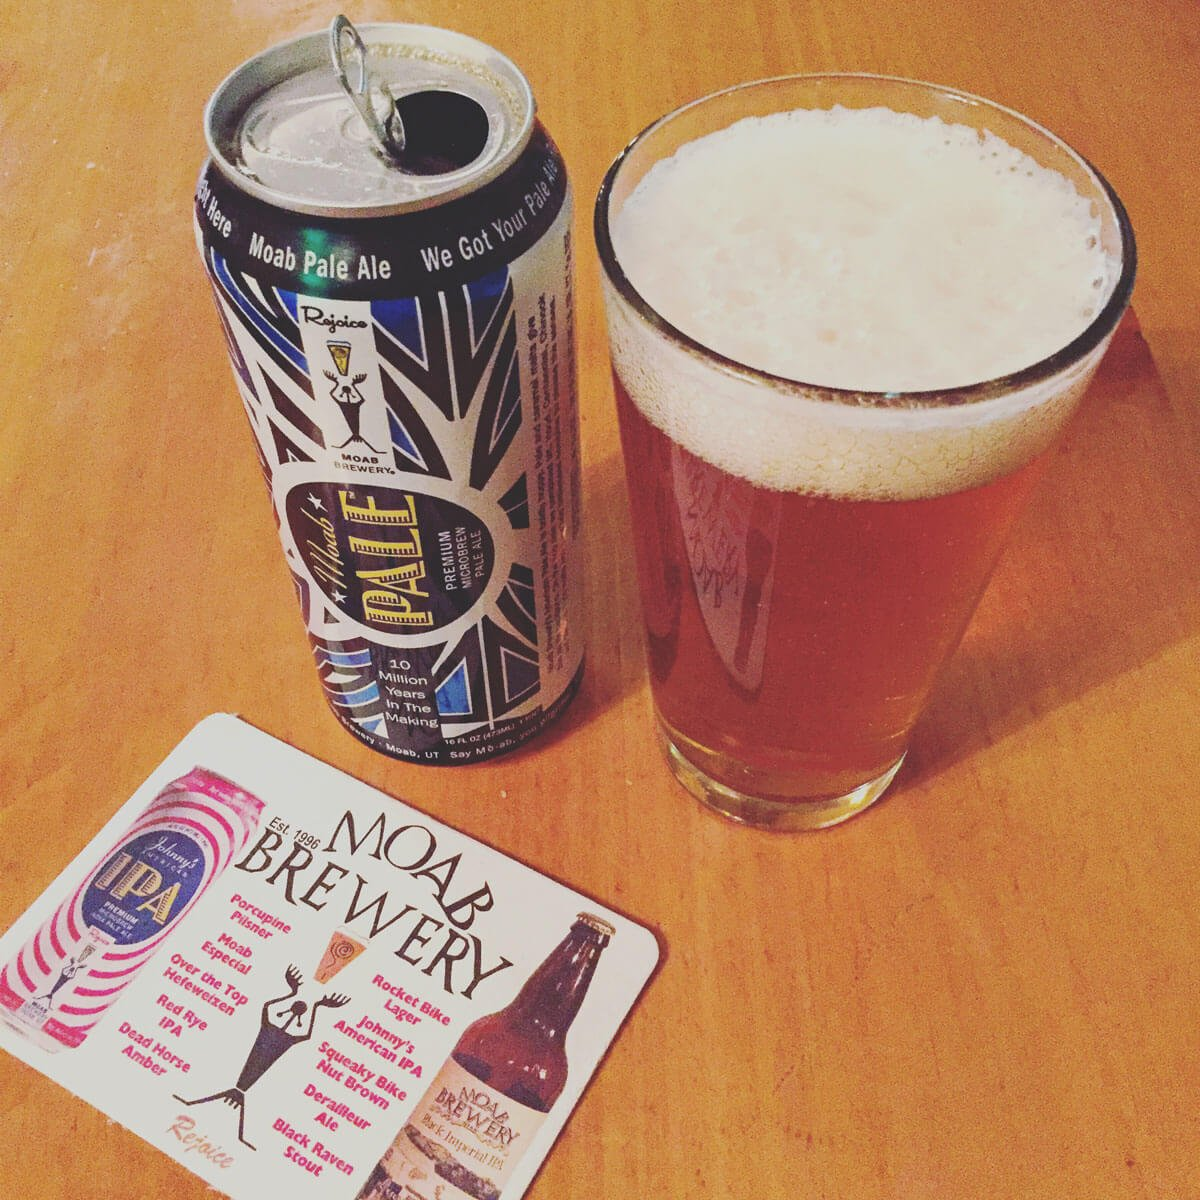 Moab Pale, an American Pale Ale by Moab Brewery